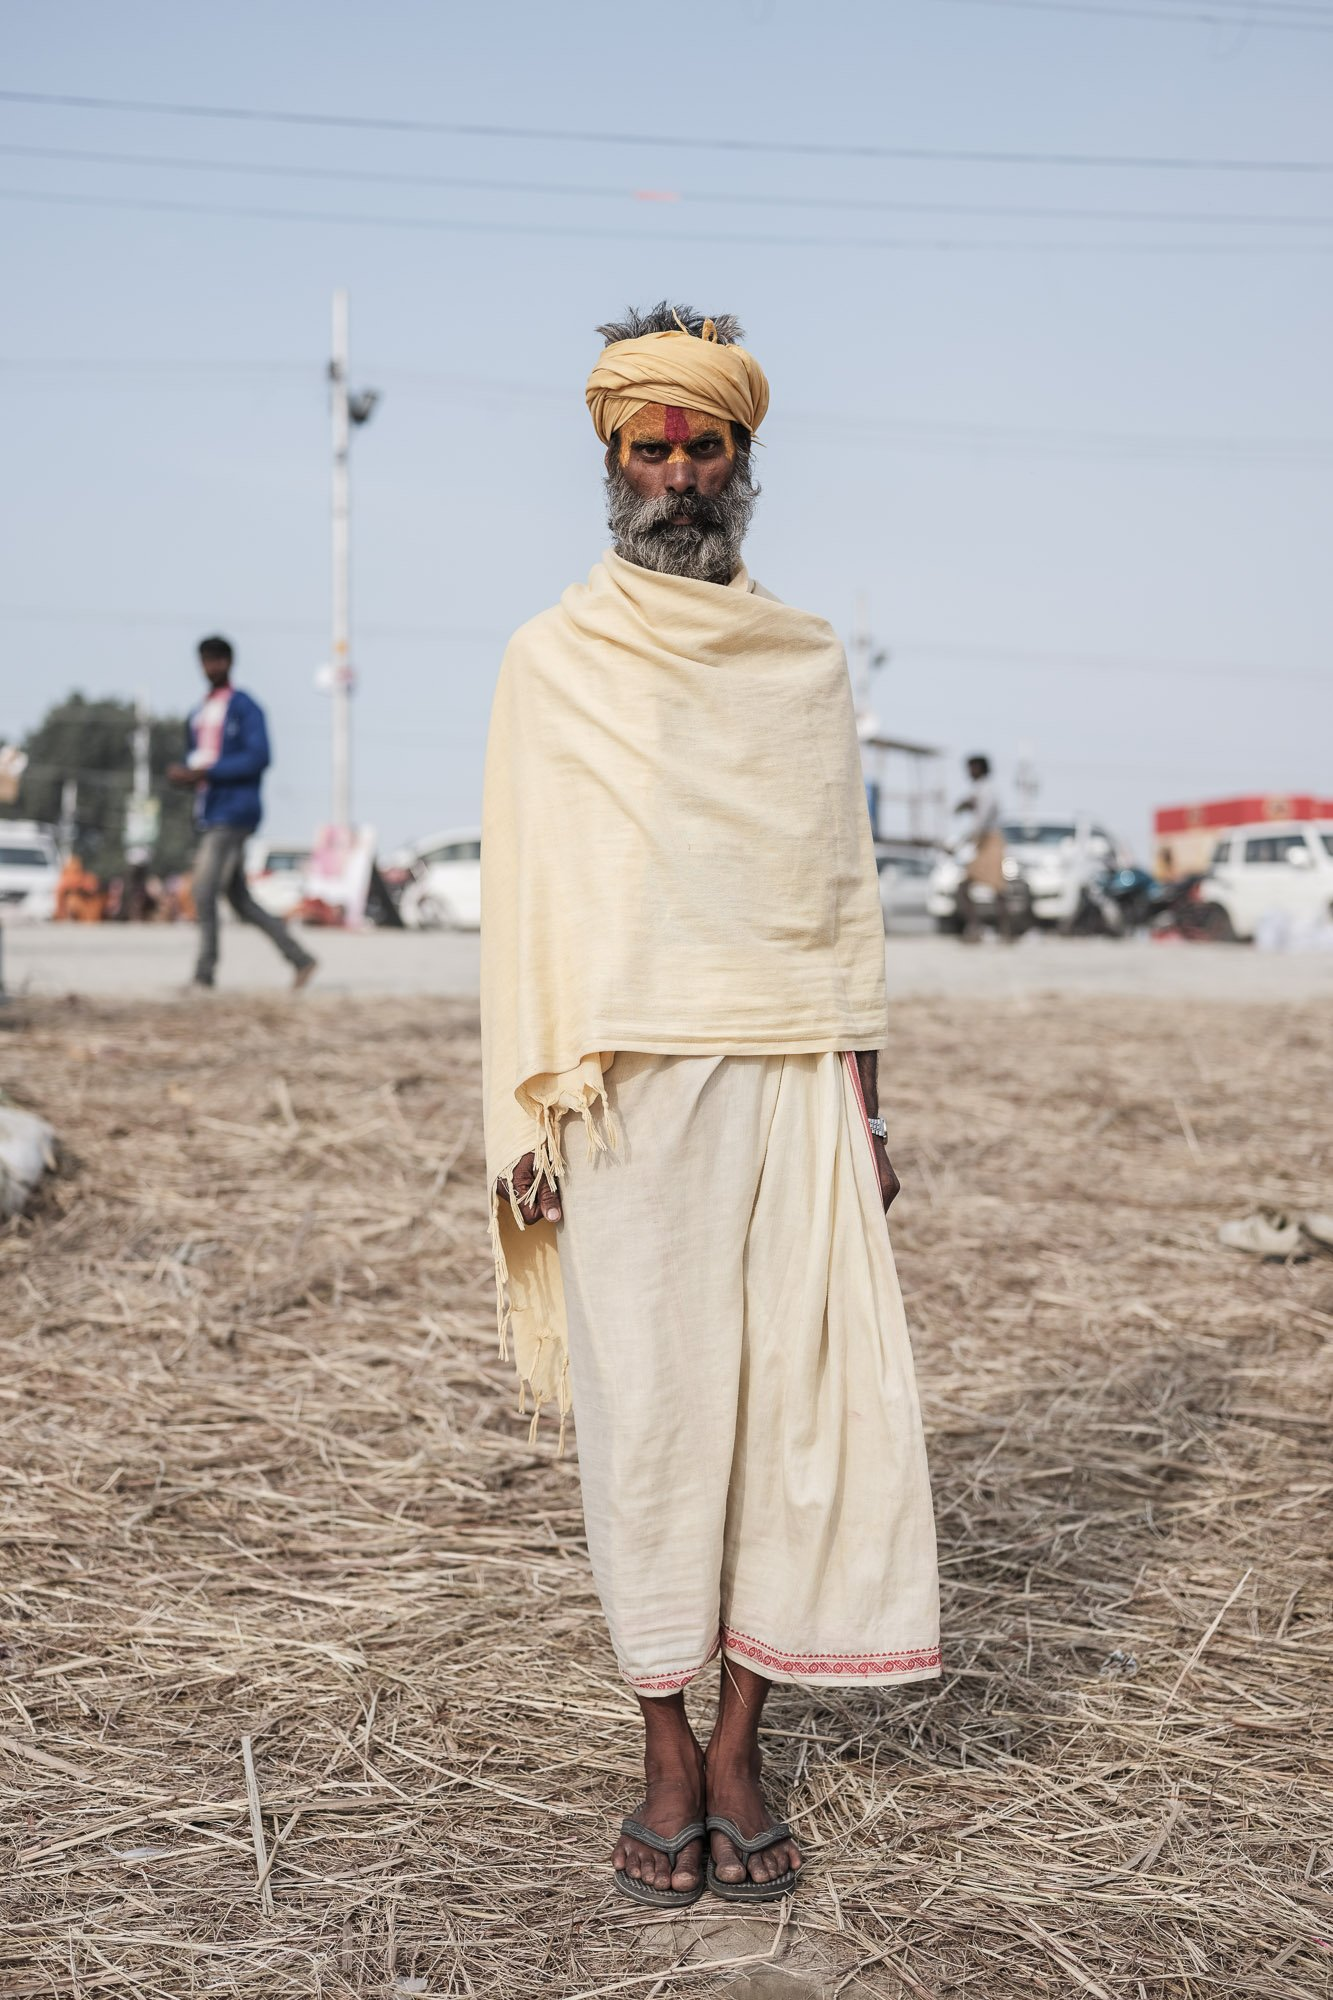 yellow man pilgrims Kumbh mela 2019 India Allahabad Prayagraj Ardh hindu religious Festival event rivers photographer jose jeuland photography